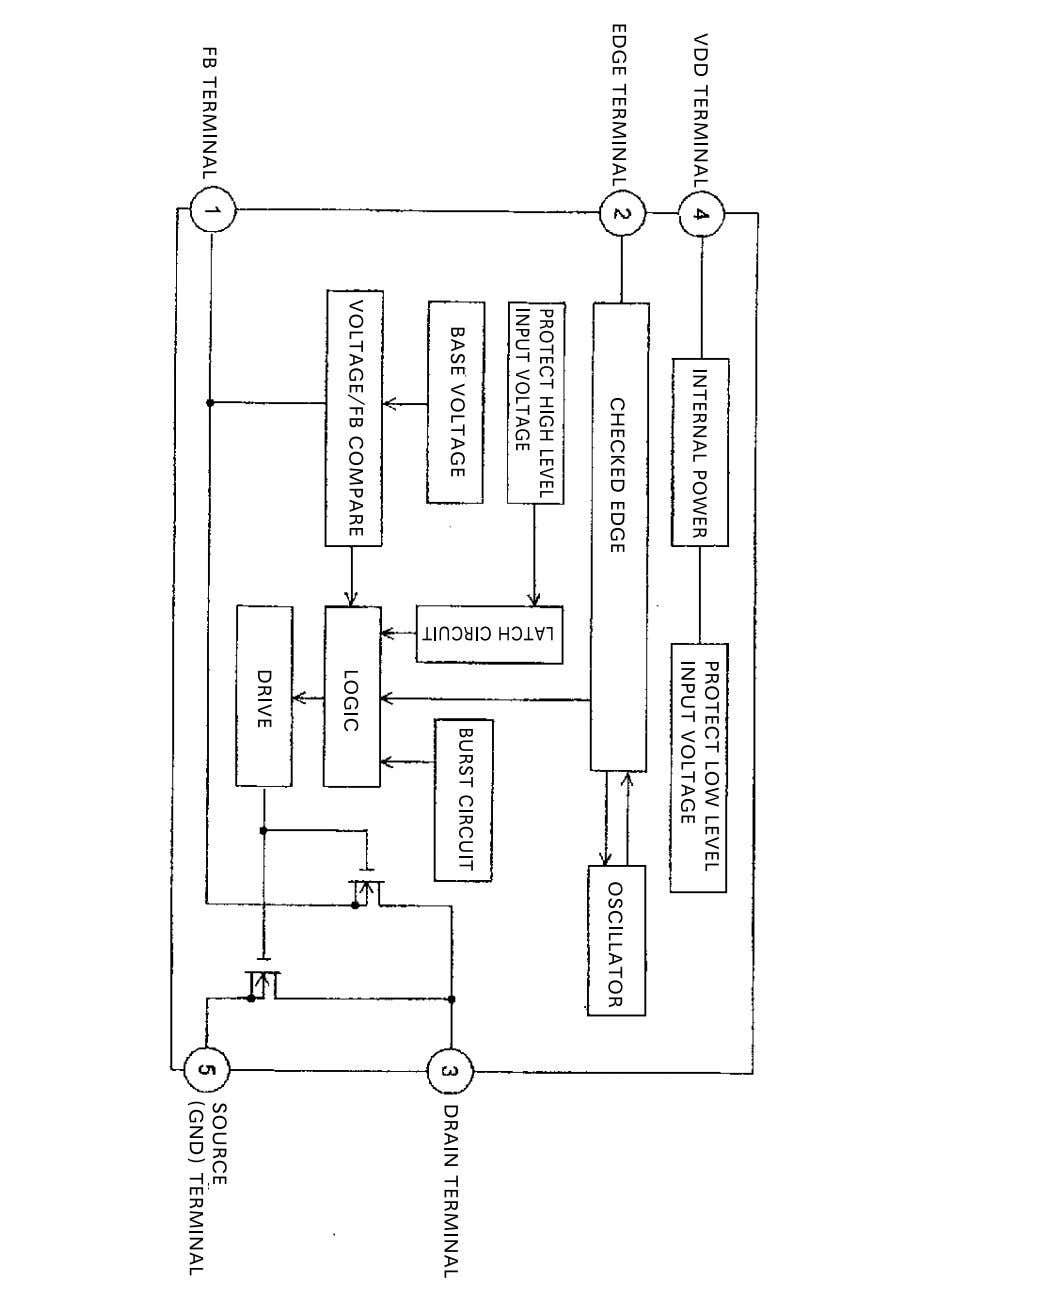 IC Block Diagrams IC601 POWER SUPPLY IC (QTN6Q04-E) -4-